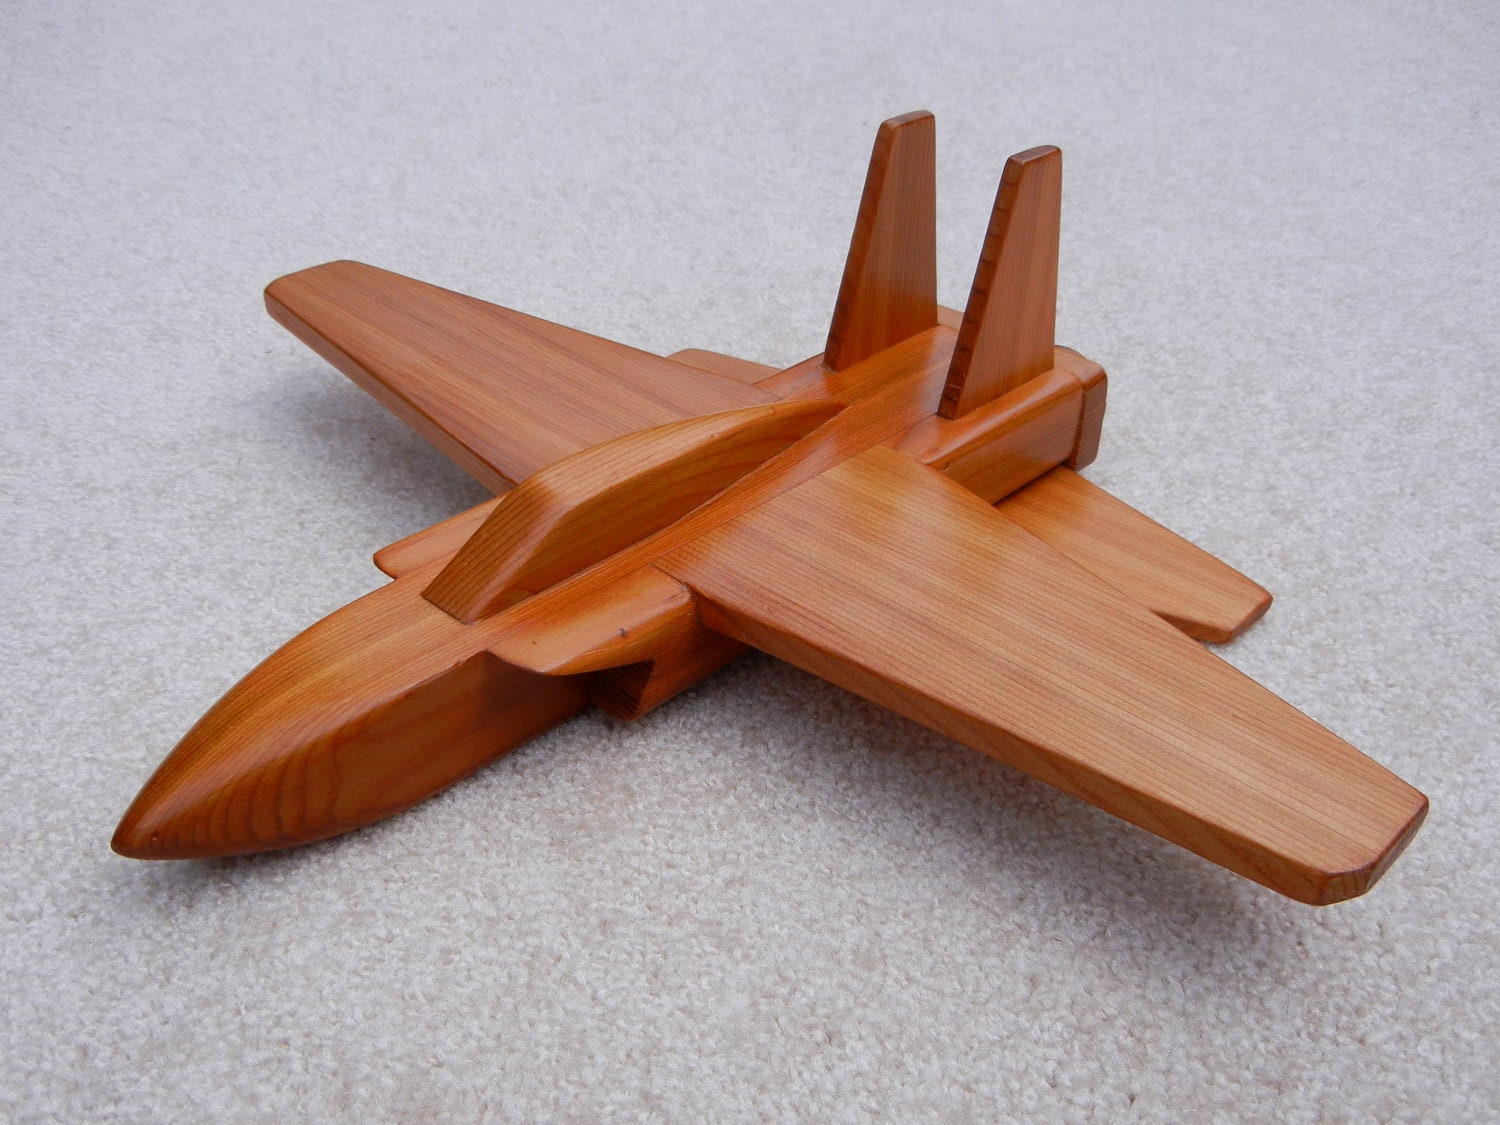 Wooden Jet Airplane Toy Cedar Wood by WoodworksByJim on Etsy